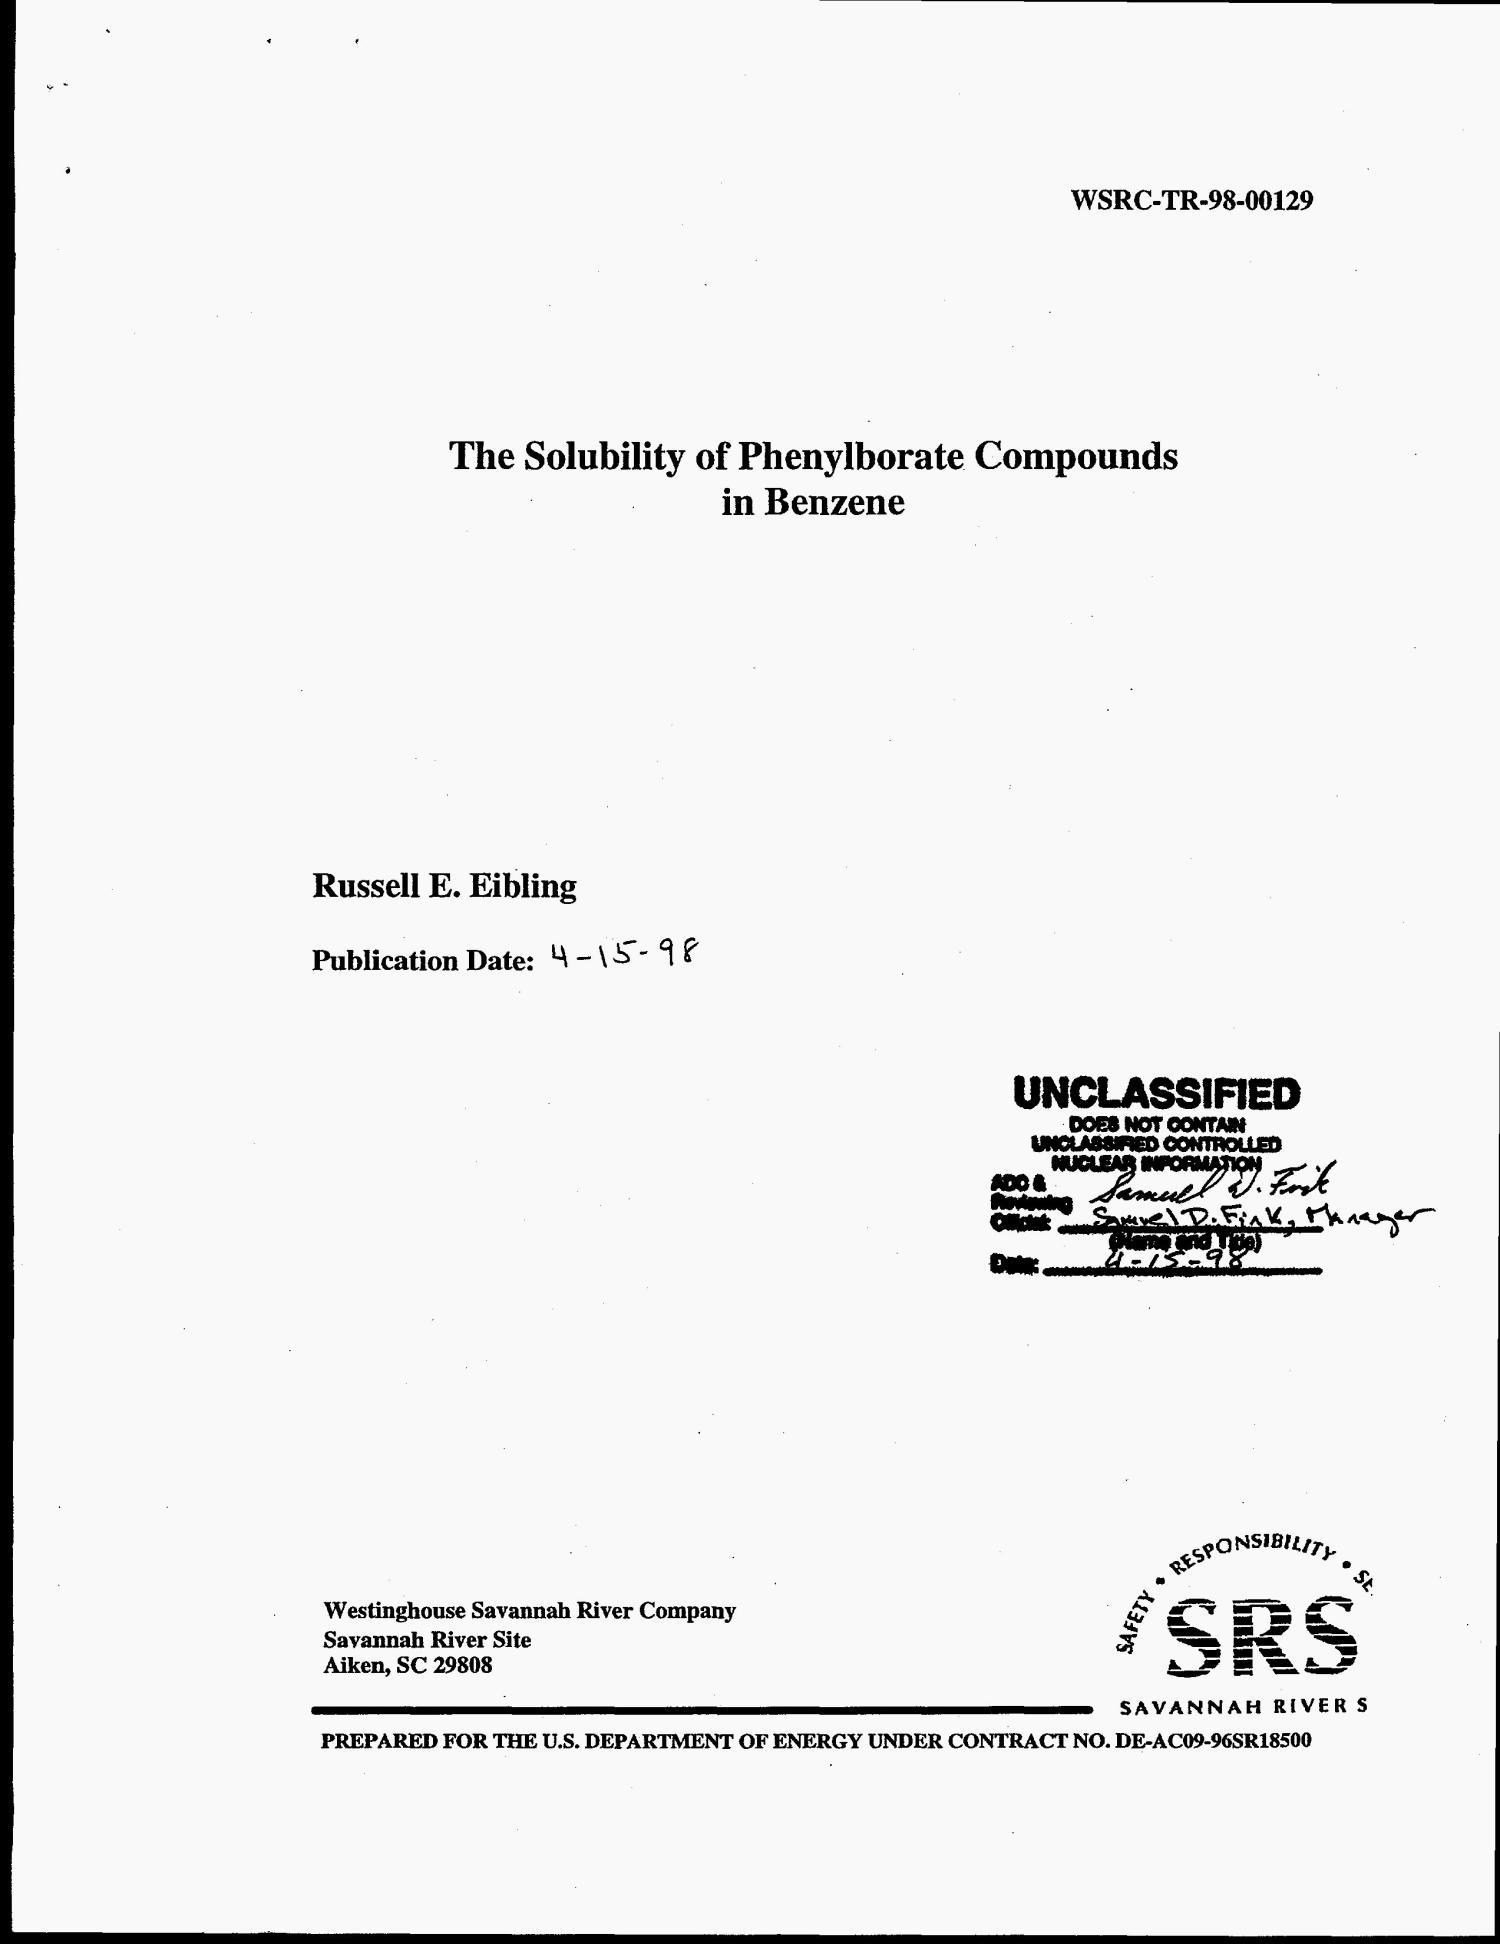 The Solubility of Phenylborate Compounds in Benzene                                                                                                      [Sequence #]: 4 of 12